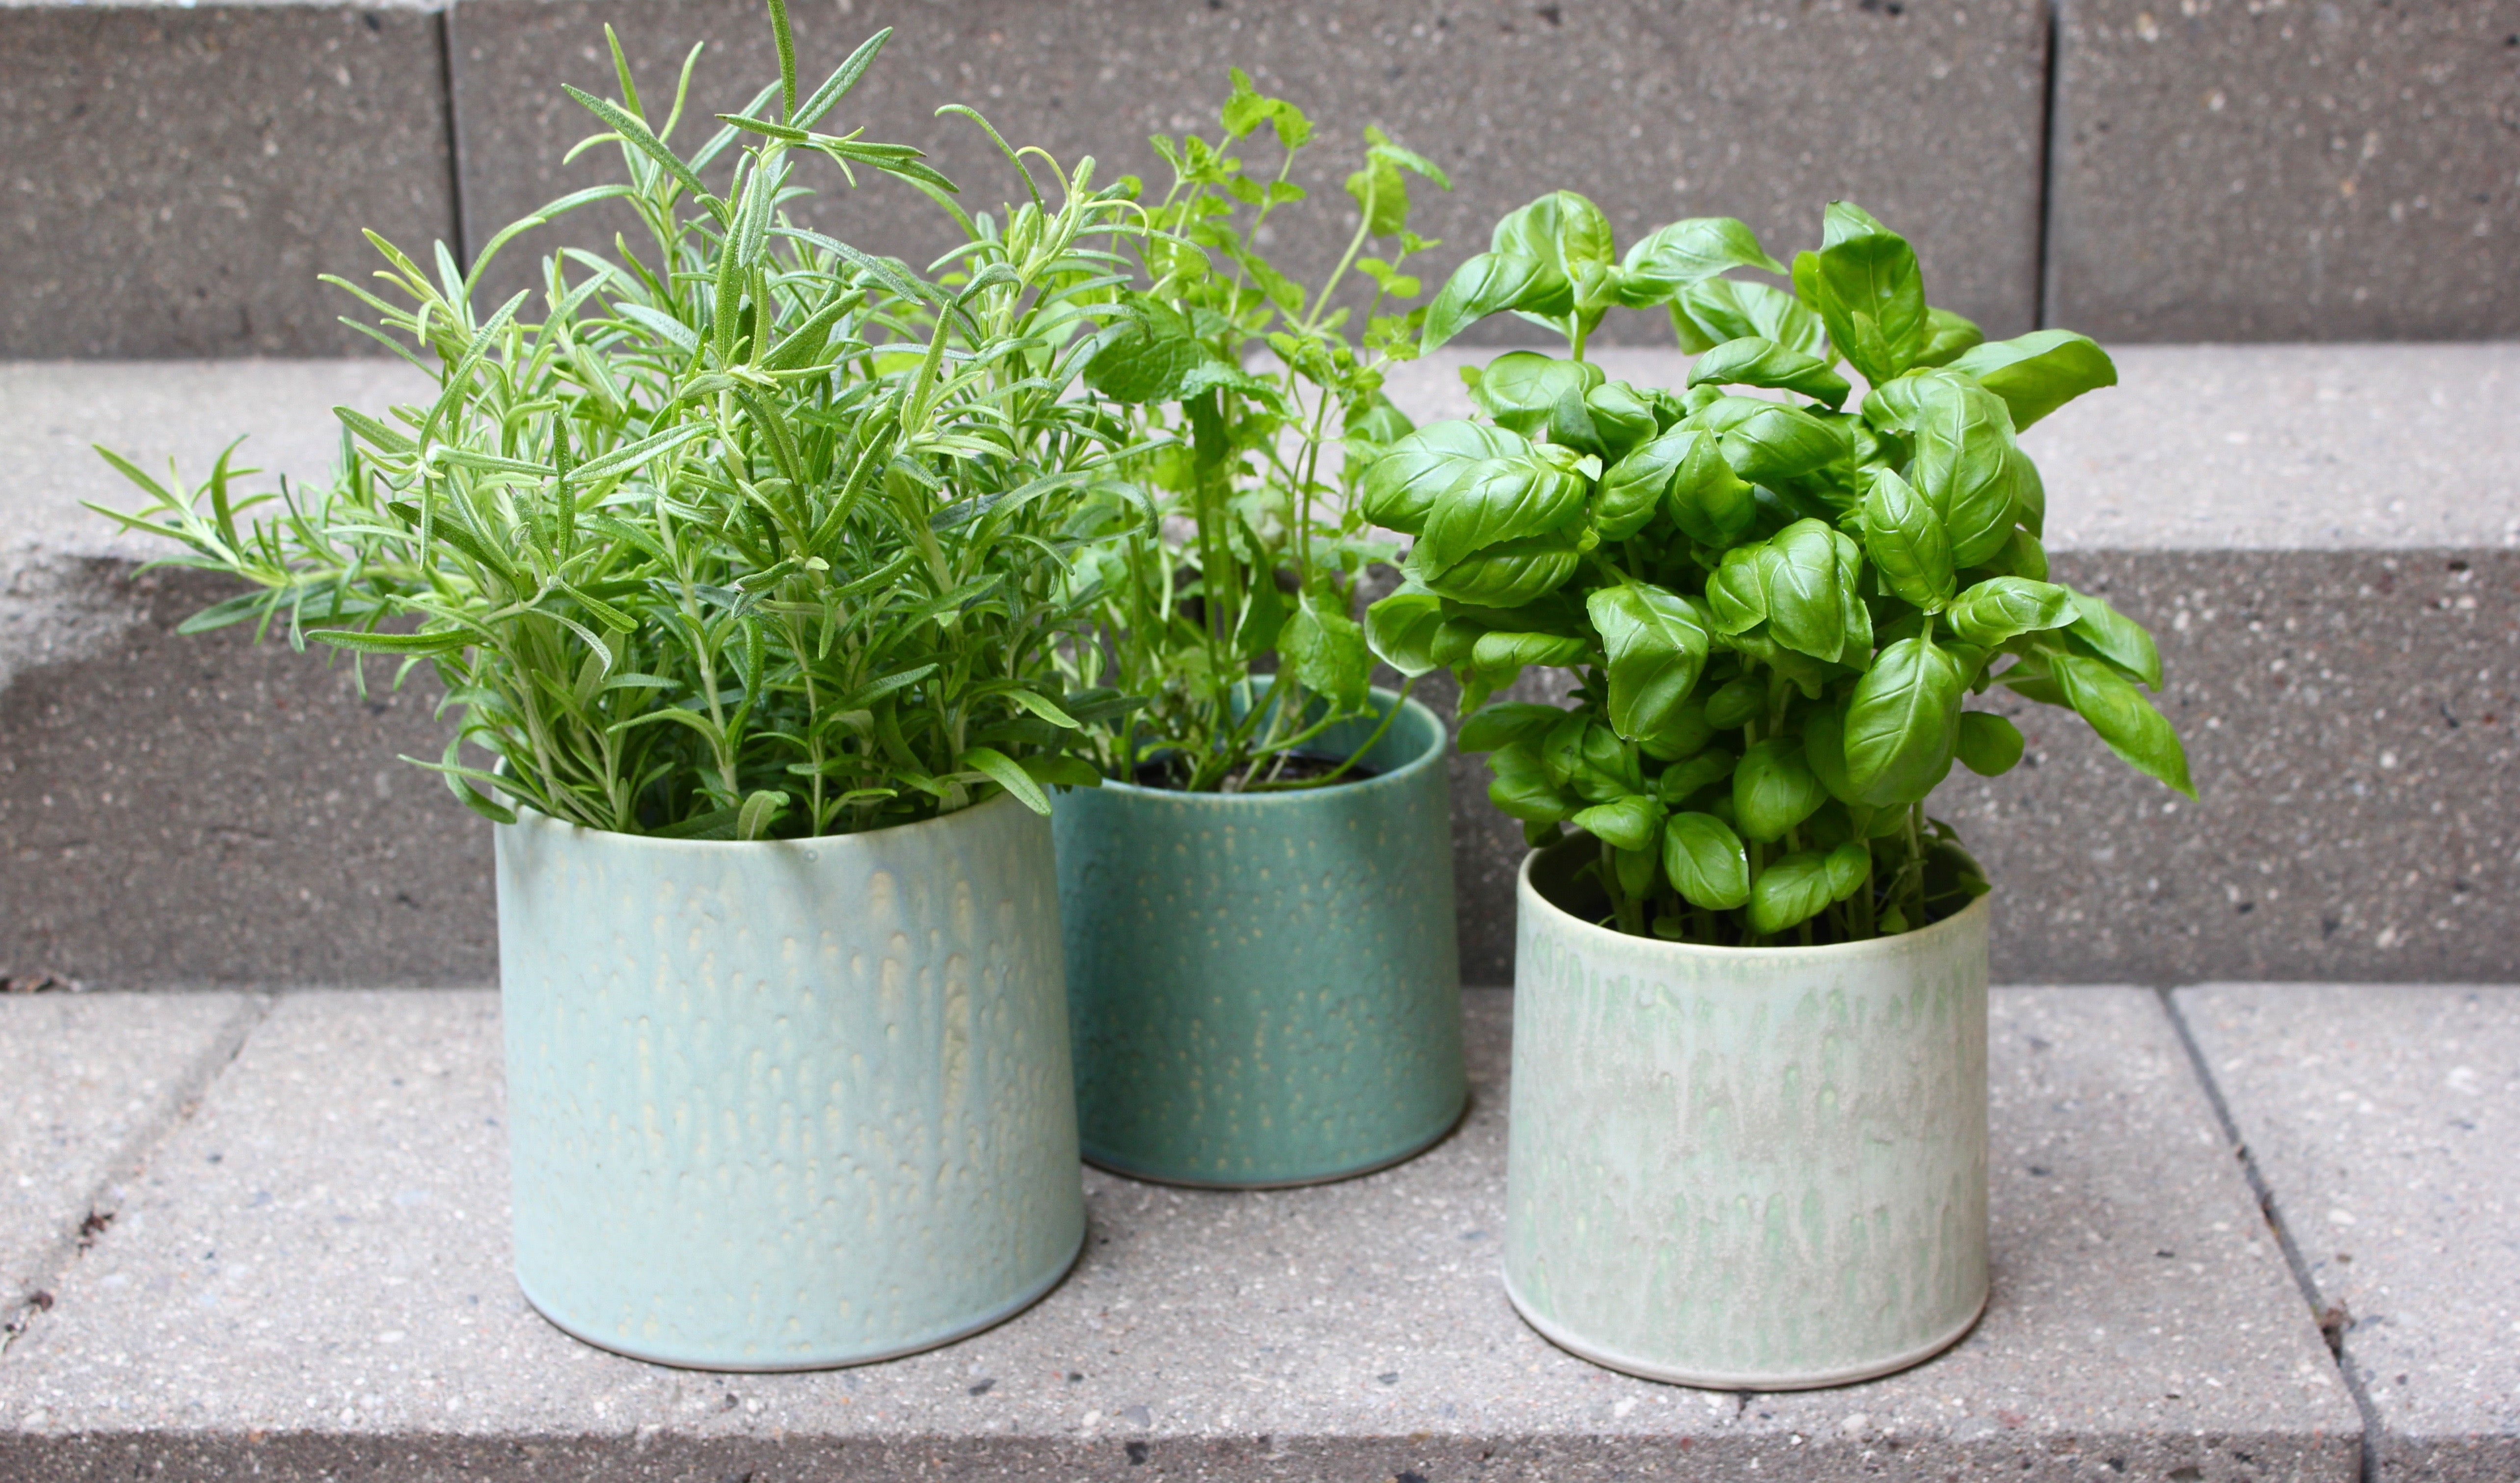 Care of indoor herbs. Tips for caring for indoor herbs such as basil, rosemary and mint.